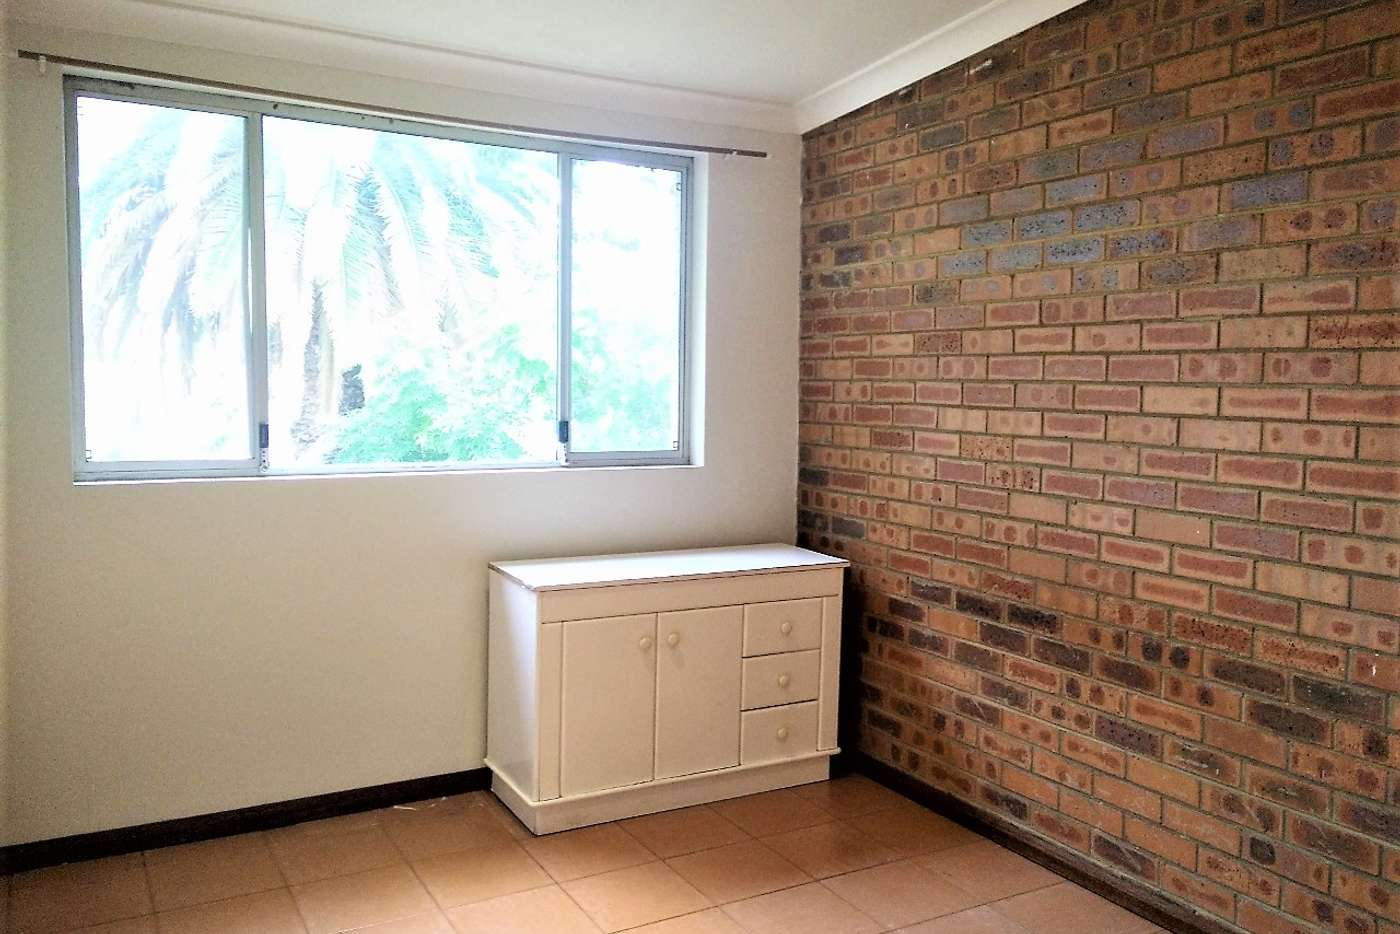 Main view of Homely unit listing, 4/198 Elswick Street, Leichhardt NSW 2040